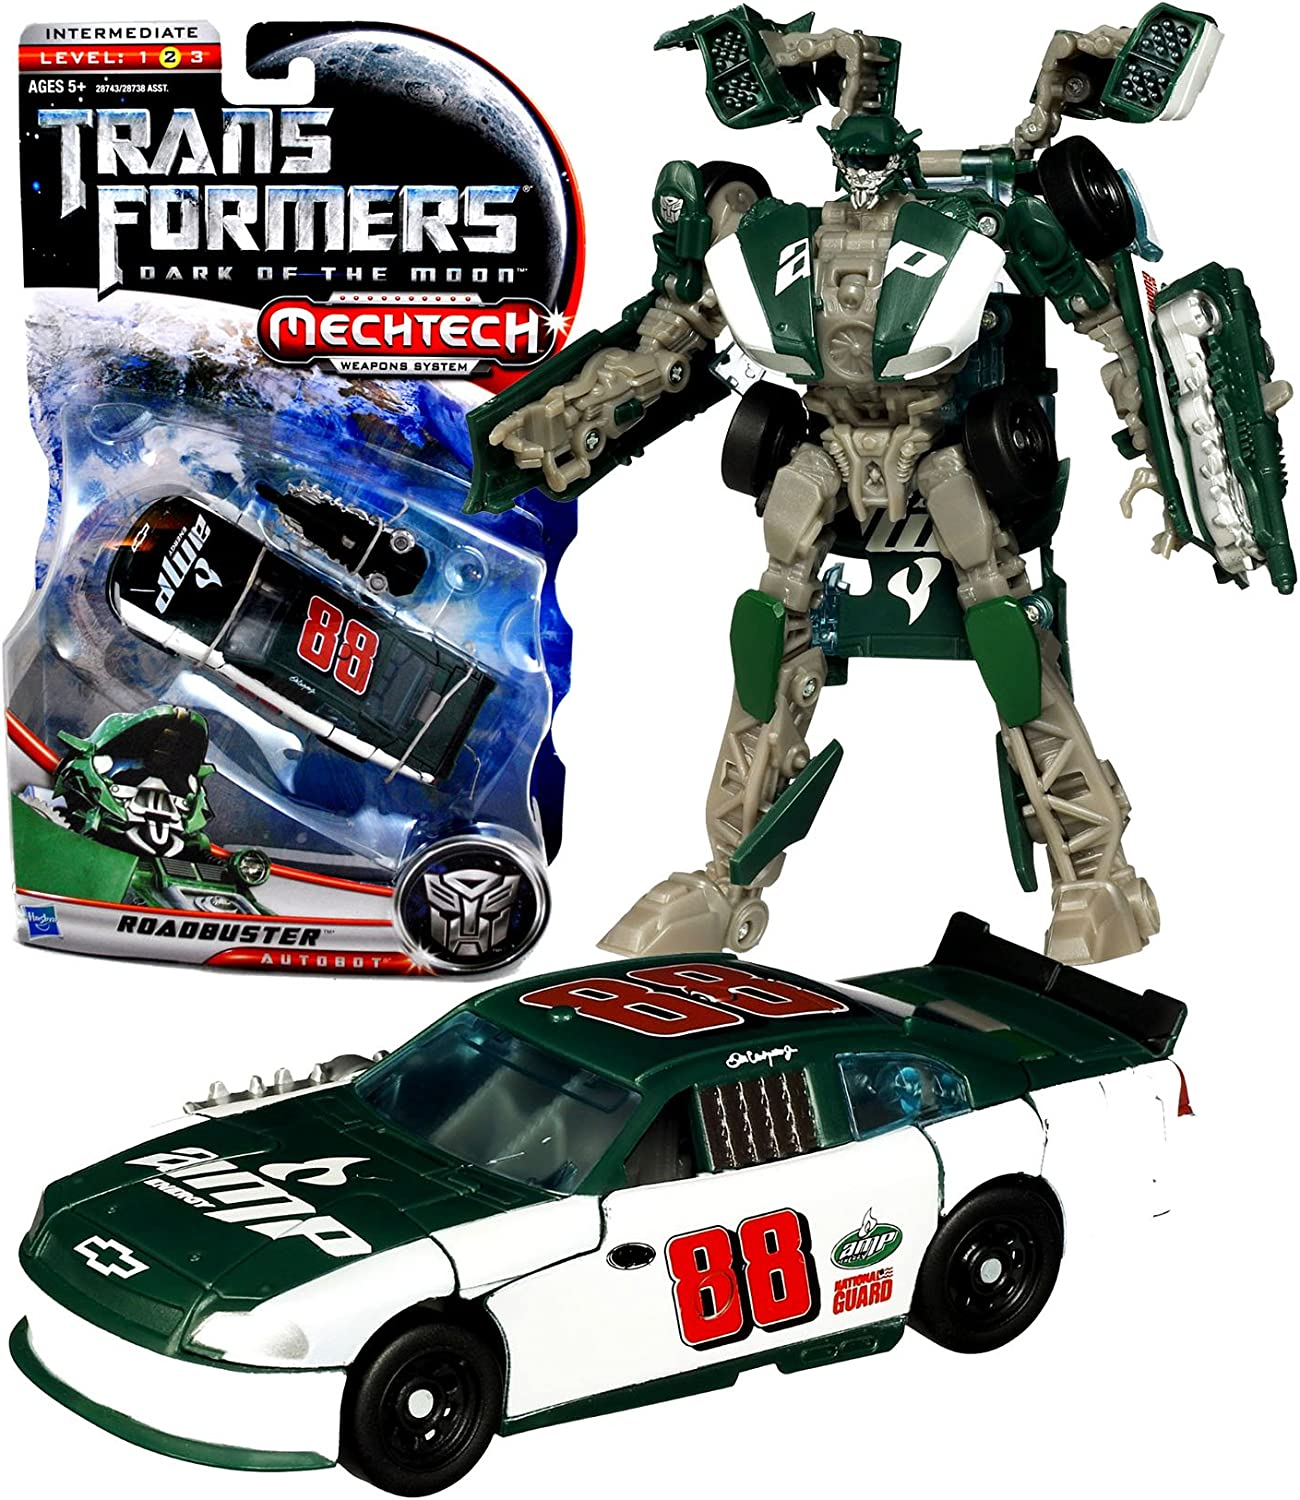 Hasbro Year 2010 Transformers Movie Series 3 Dark of the Moon Deluxe Class 6 Inch Tall Robot Action Figure with MechTech Weapon System - Autobot ROADBUSTER with Blaster that ConGrüns to Assault Saw (Vehicle Mode   88 Dale Earnhardt Jr. Track Race Car) by